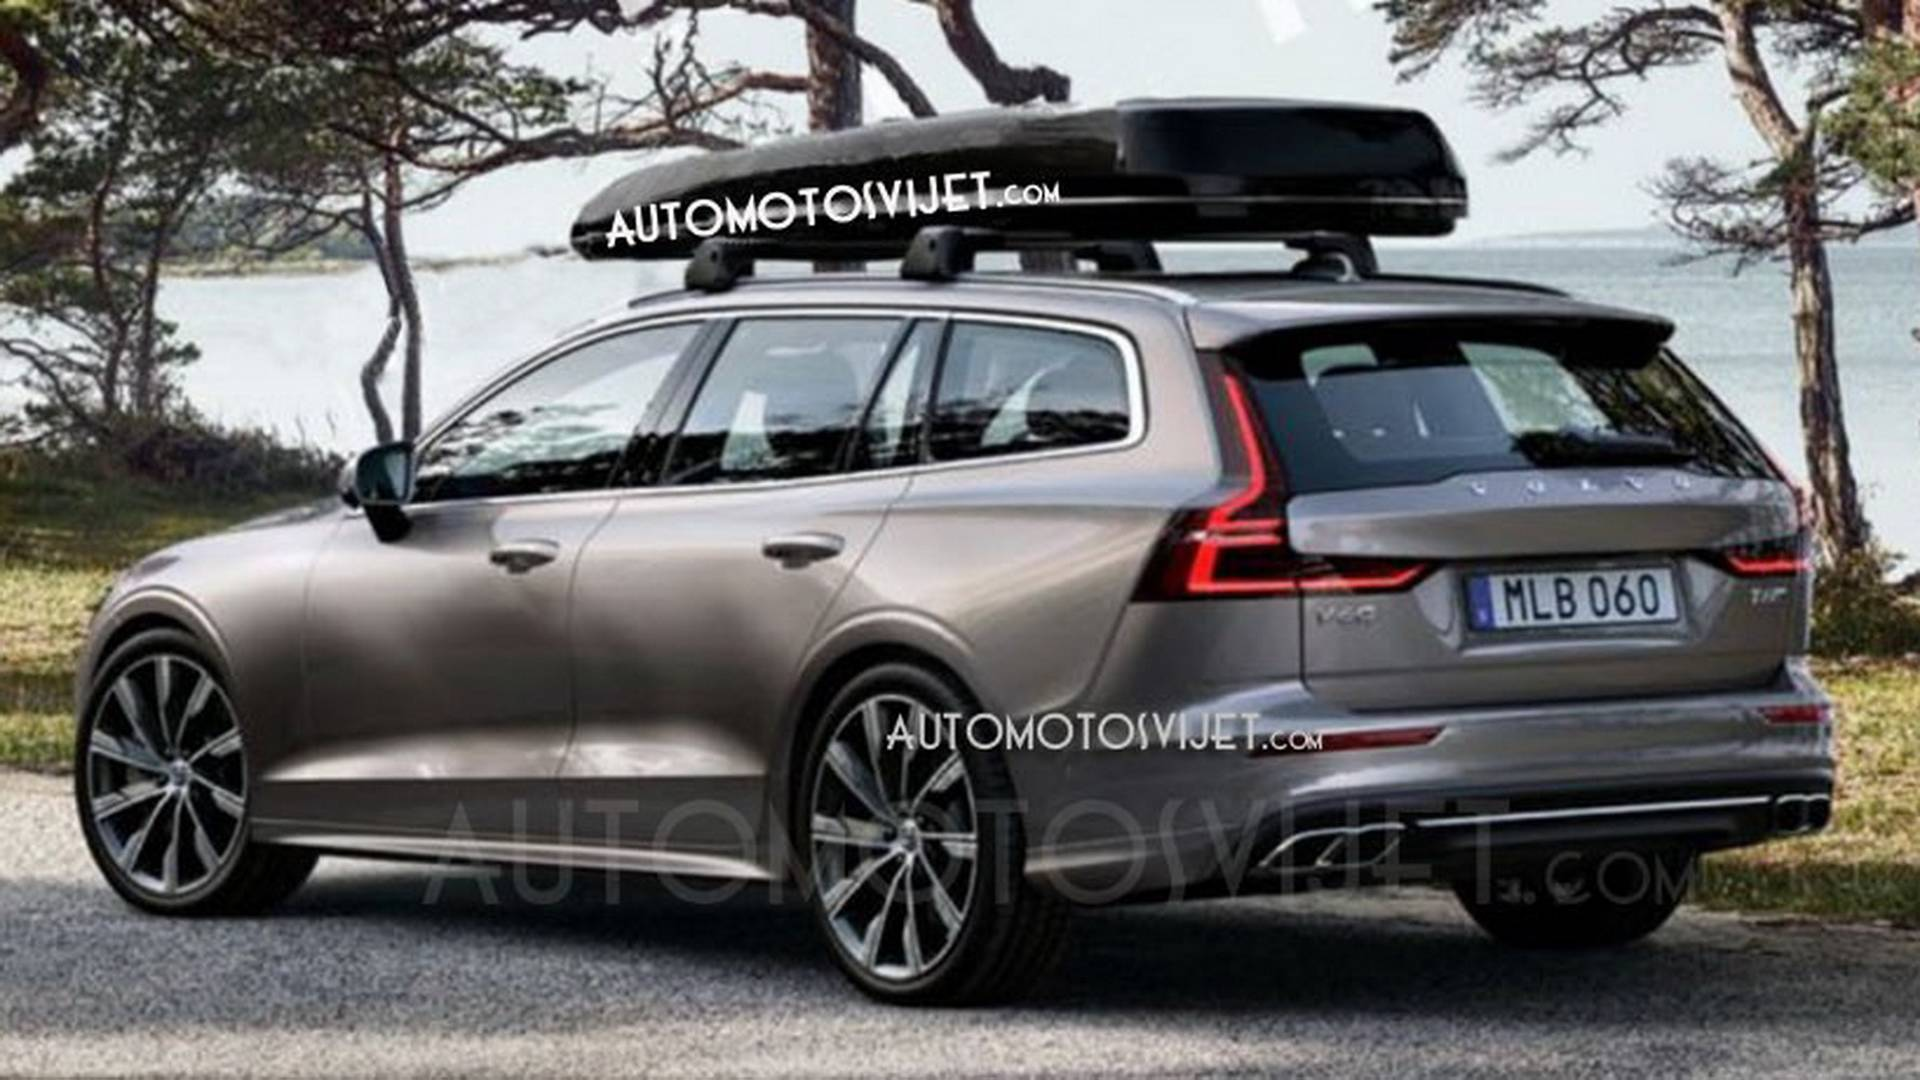 Volvo V60 leaked ahead of its debut in Geneva